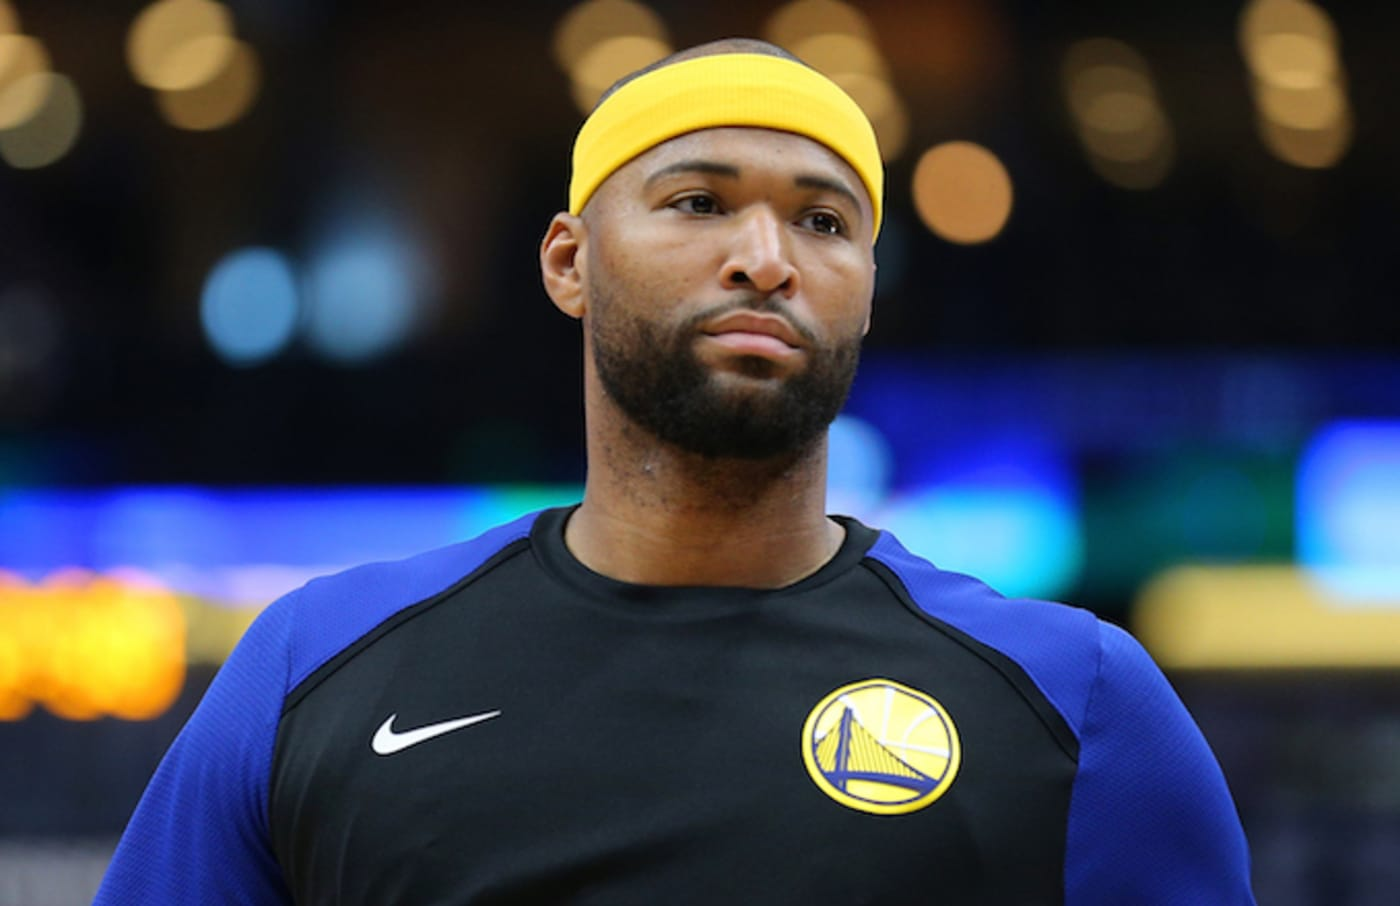 DeMarcus Cousins reacts during a game against the New Orleans Pelicans.